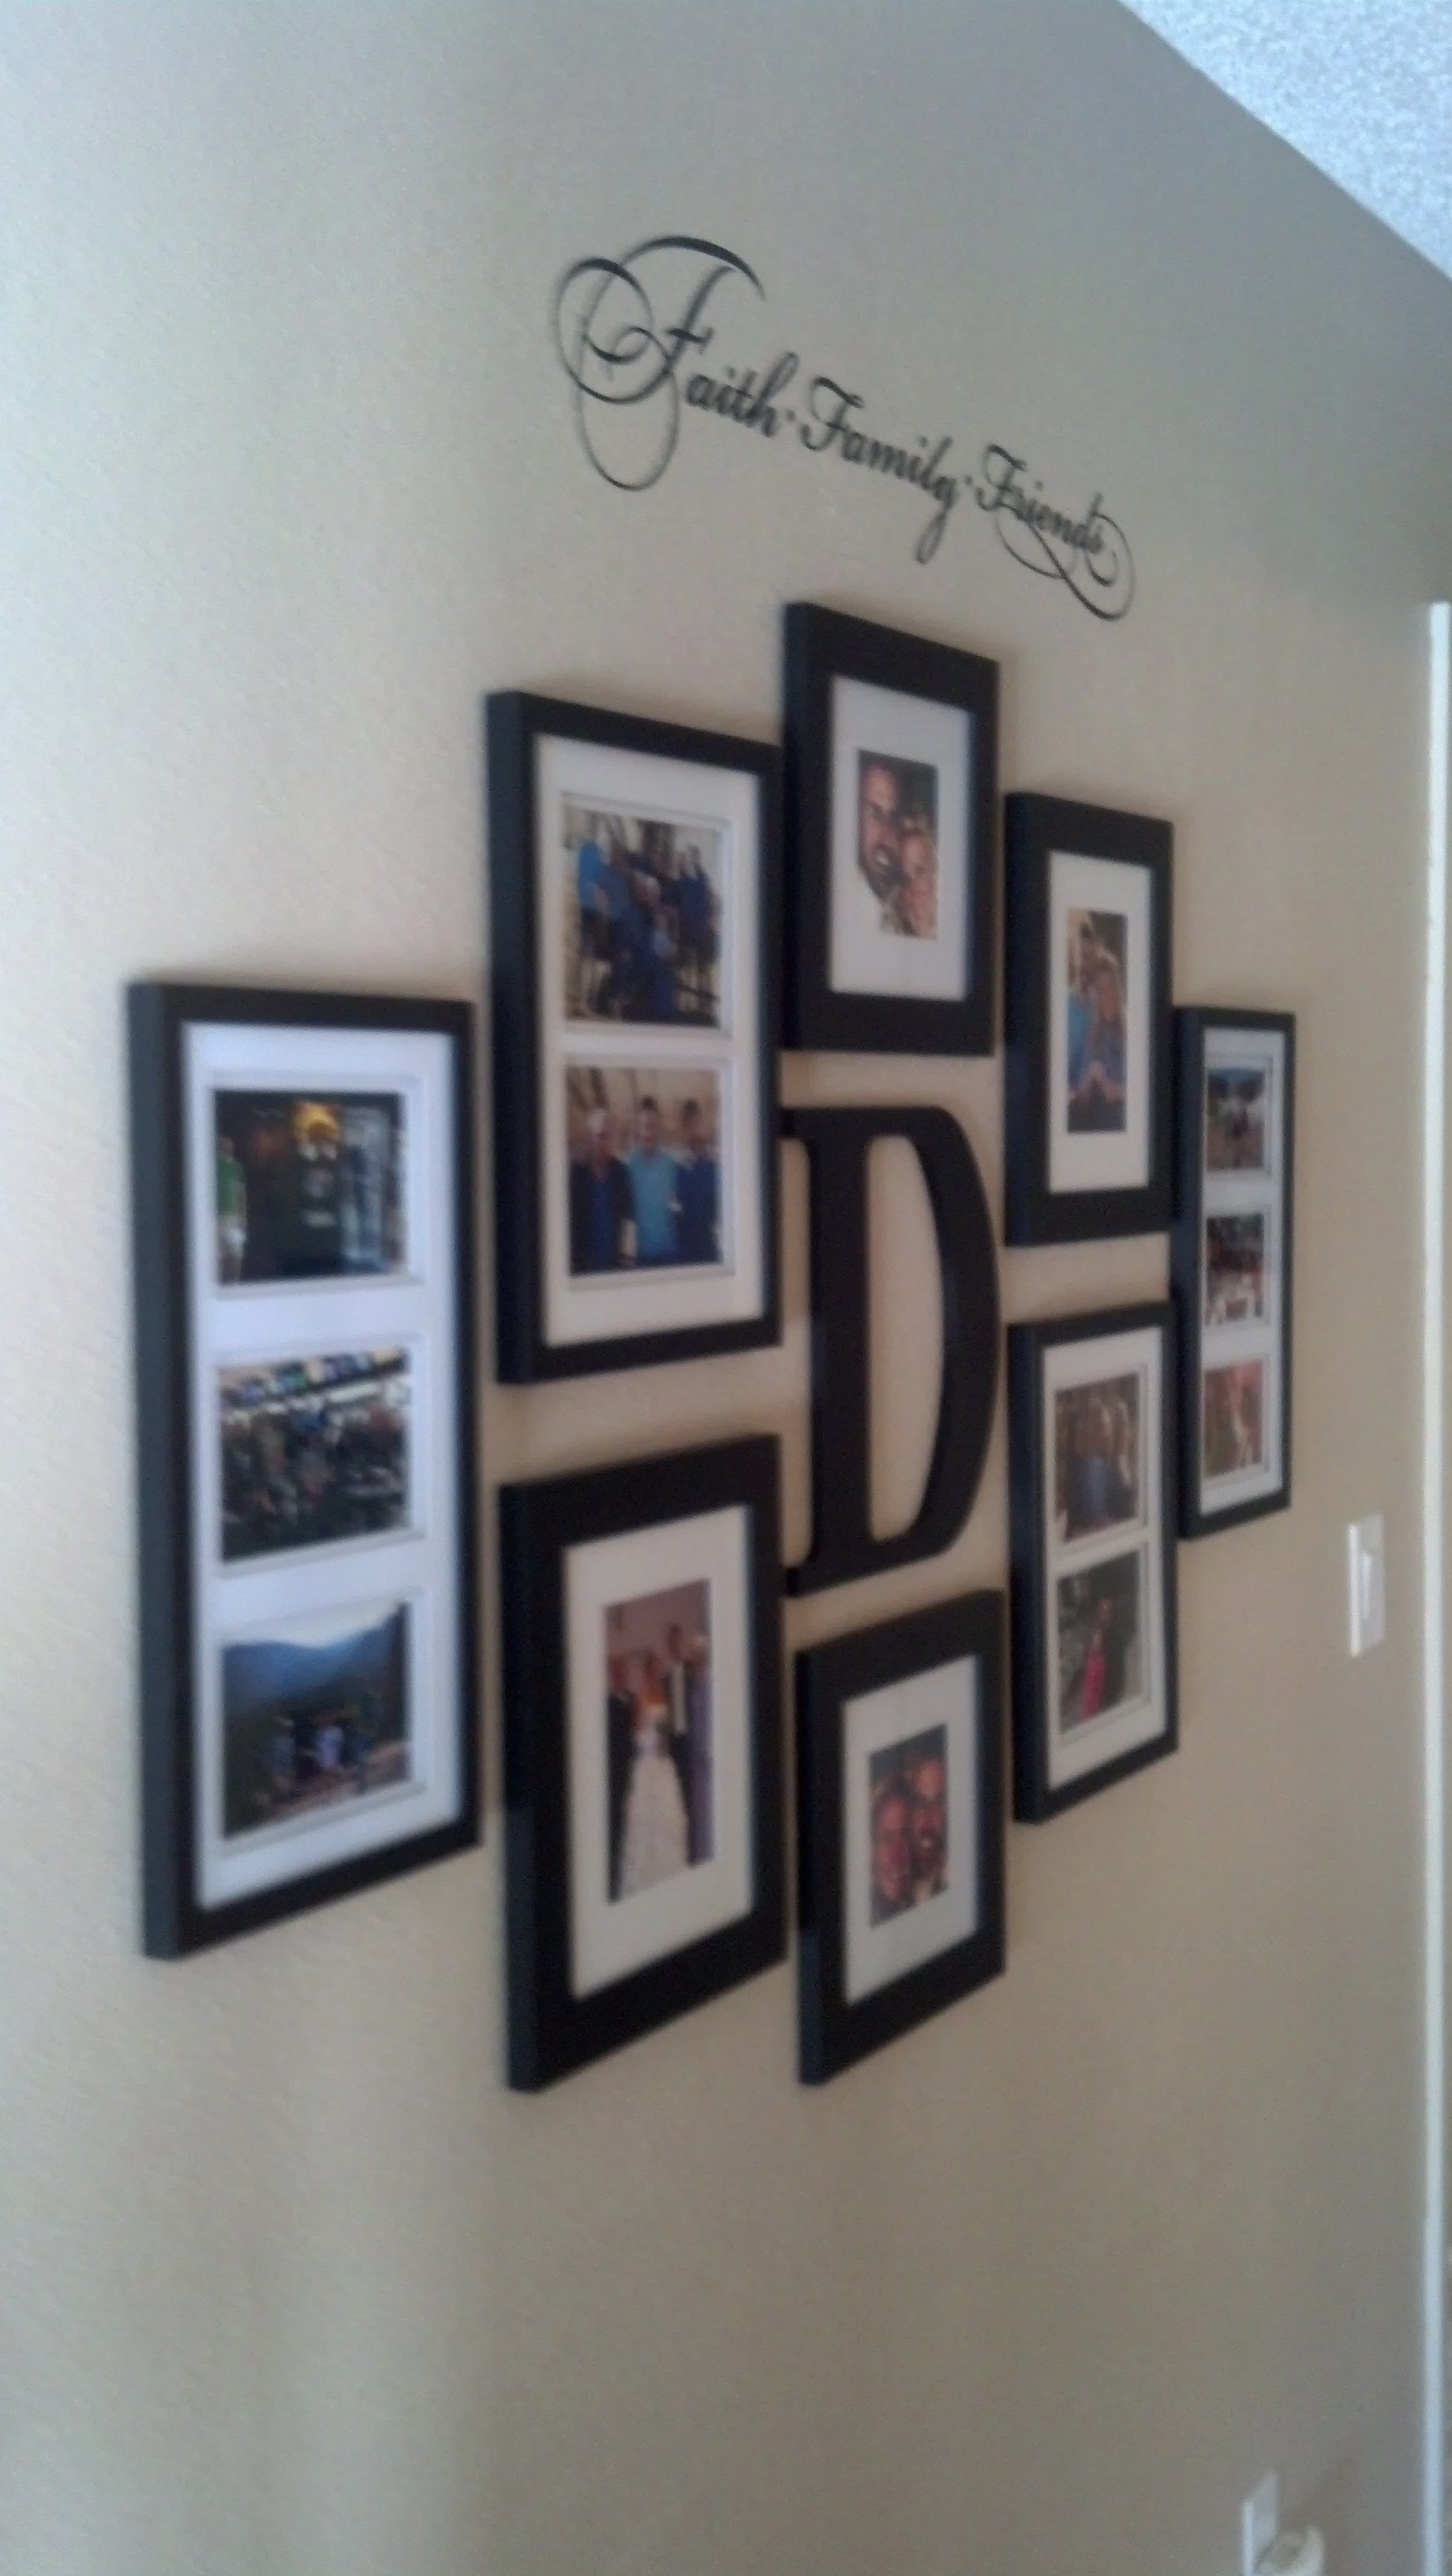 Bedroom wall decorating ideas picture frames - Faith Family And Friends Hallway Wall Collage